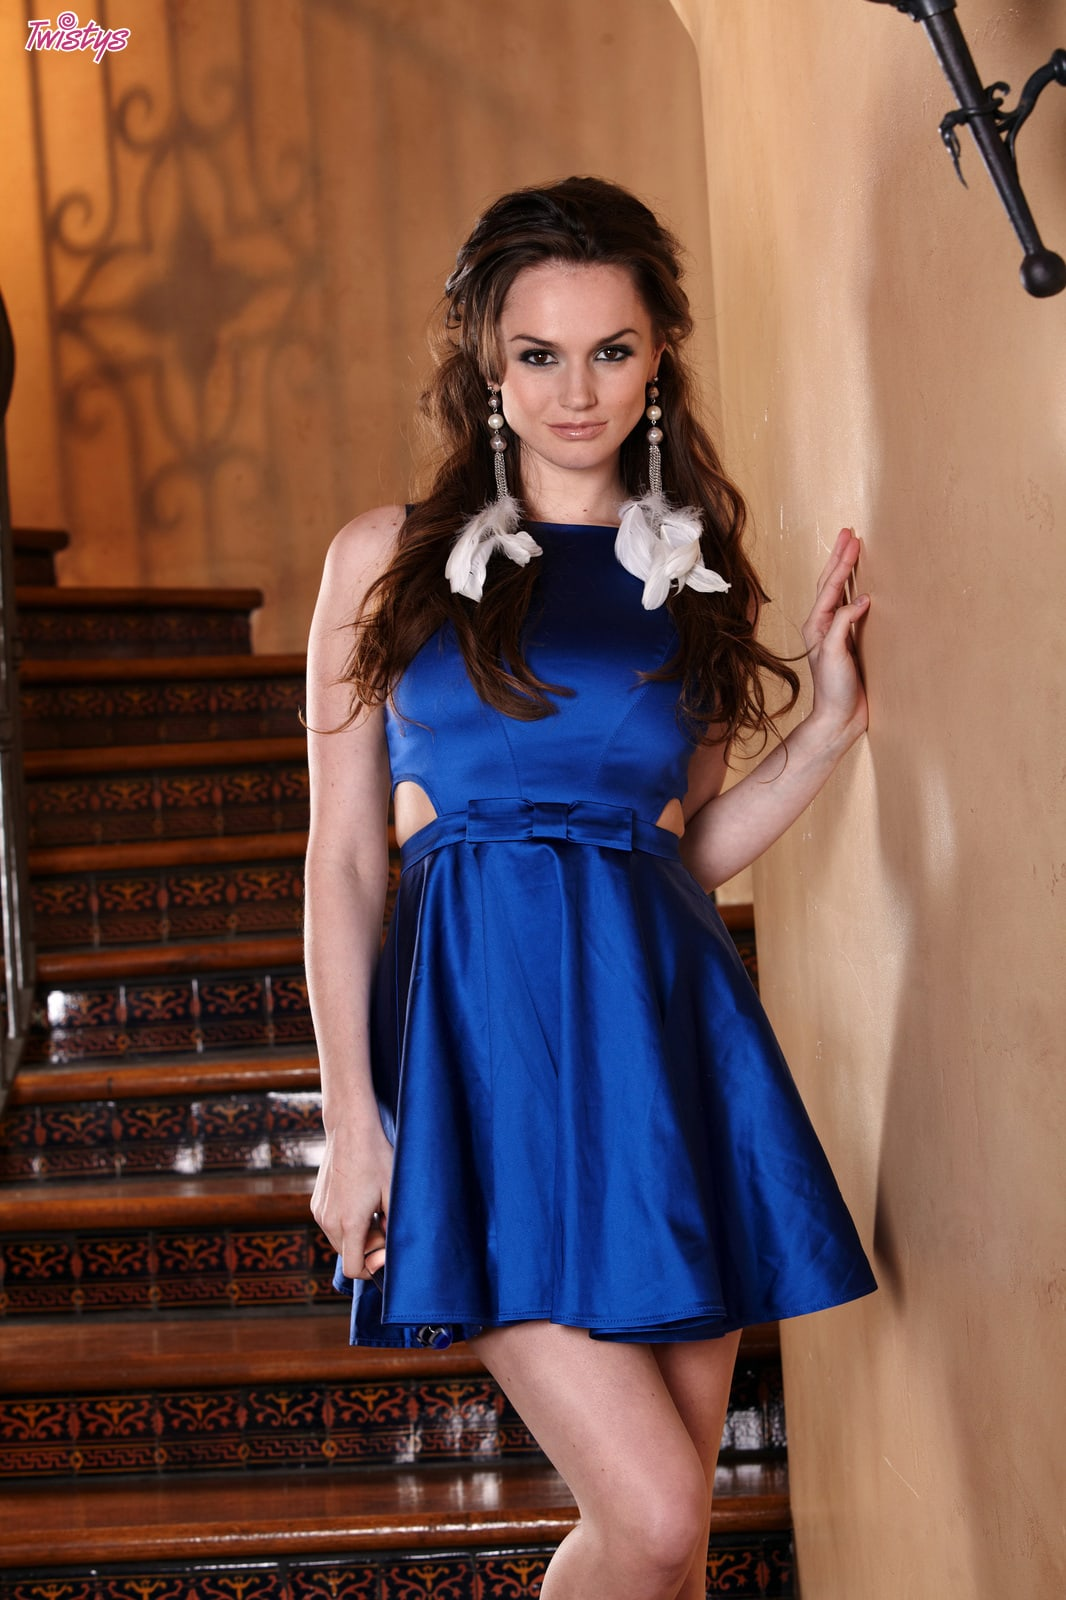 interracial porn blue dress - Tori Black taking off blue dress by stairway